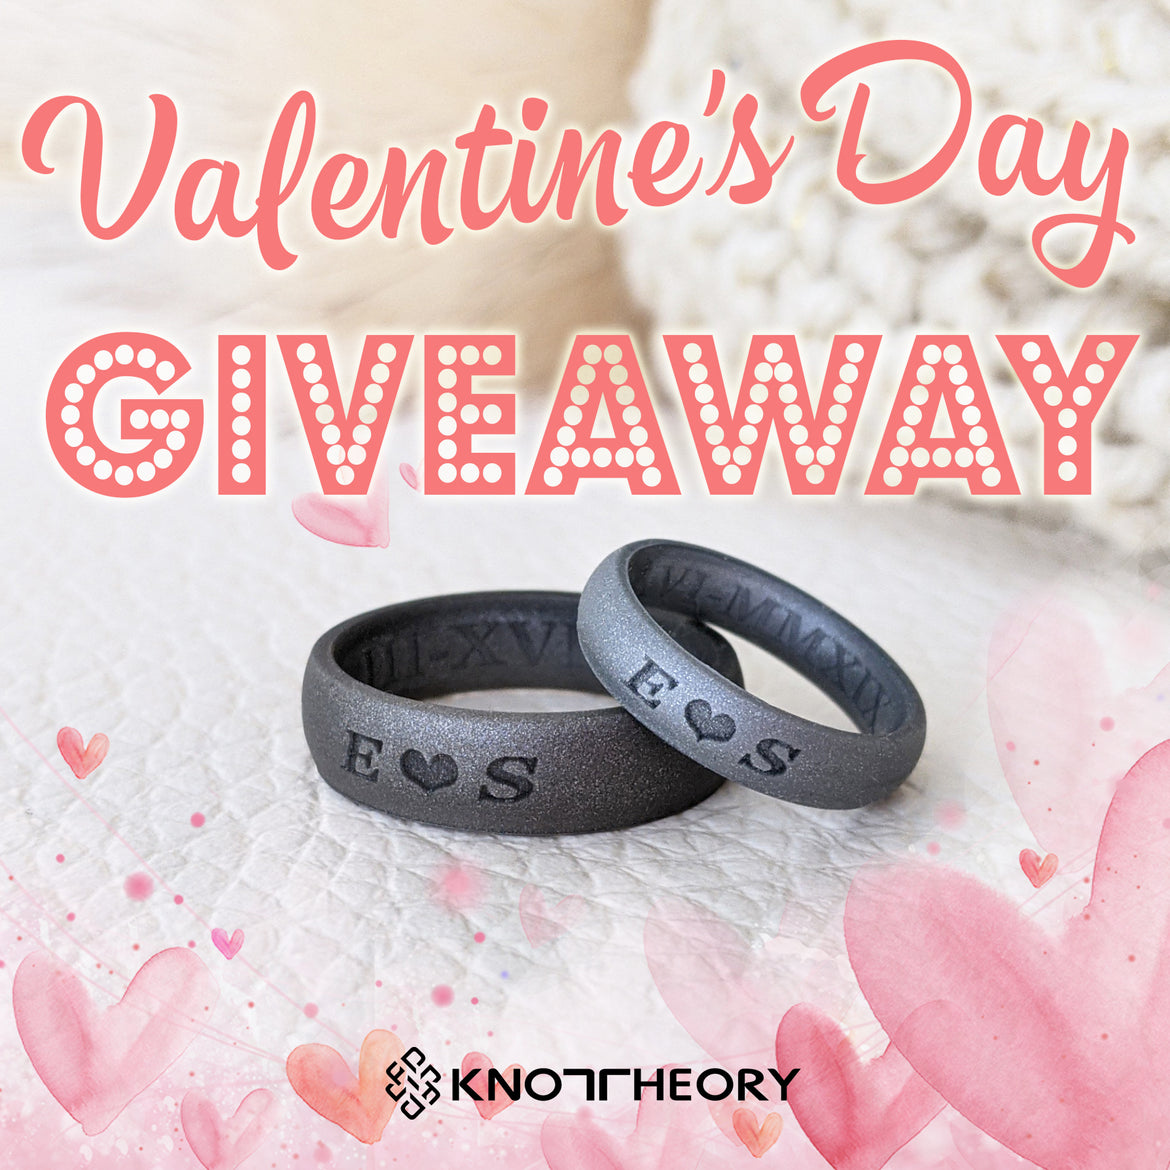 Valentine's Day Contest Winner Revealed!